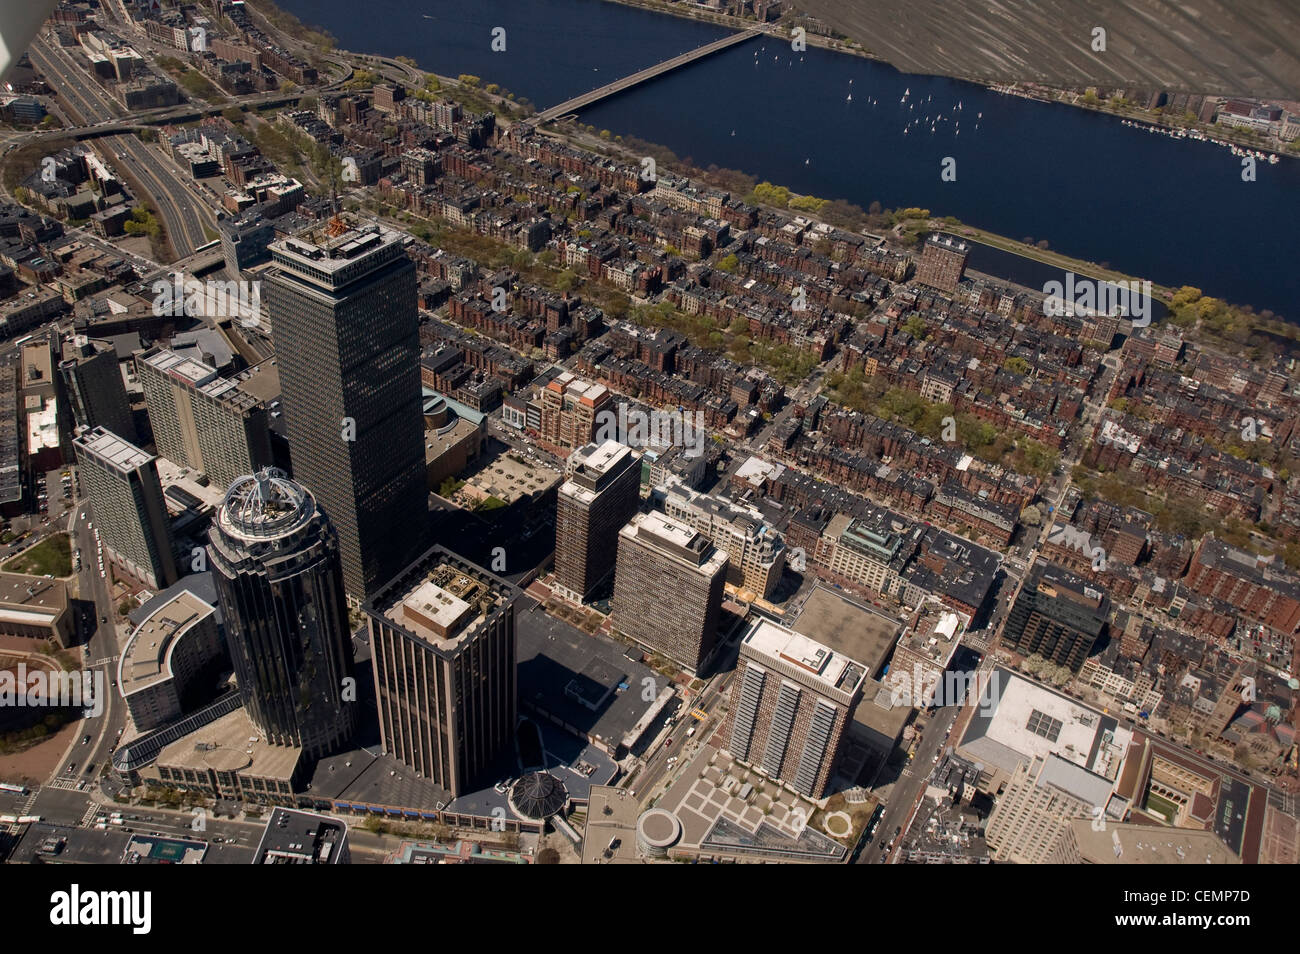 Boston's Back Bay area and downtown as seen from the air on April 26, 2008. Aerial, Boston/Cambridge, MA Stock Photo